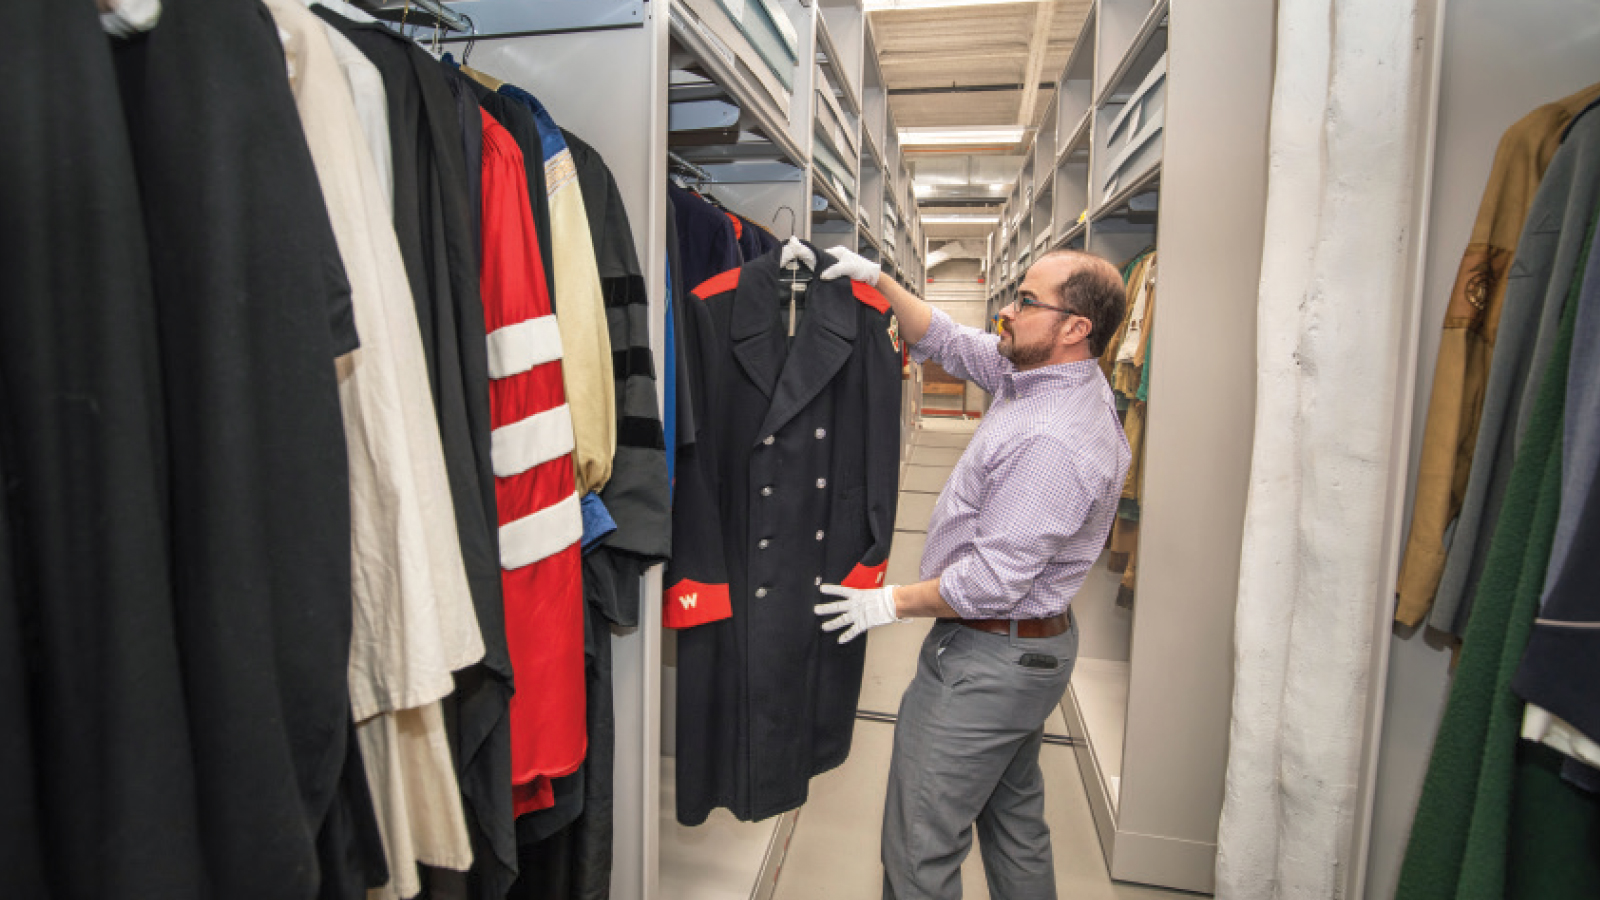 Joe Kapler, lead curator for the Wisconsin Historical Society's Museums and Historic Sites, looks through the apparel collection